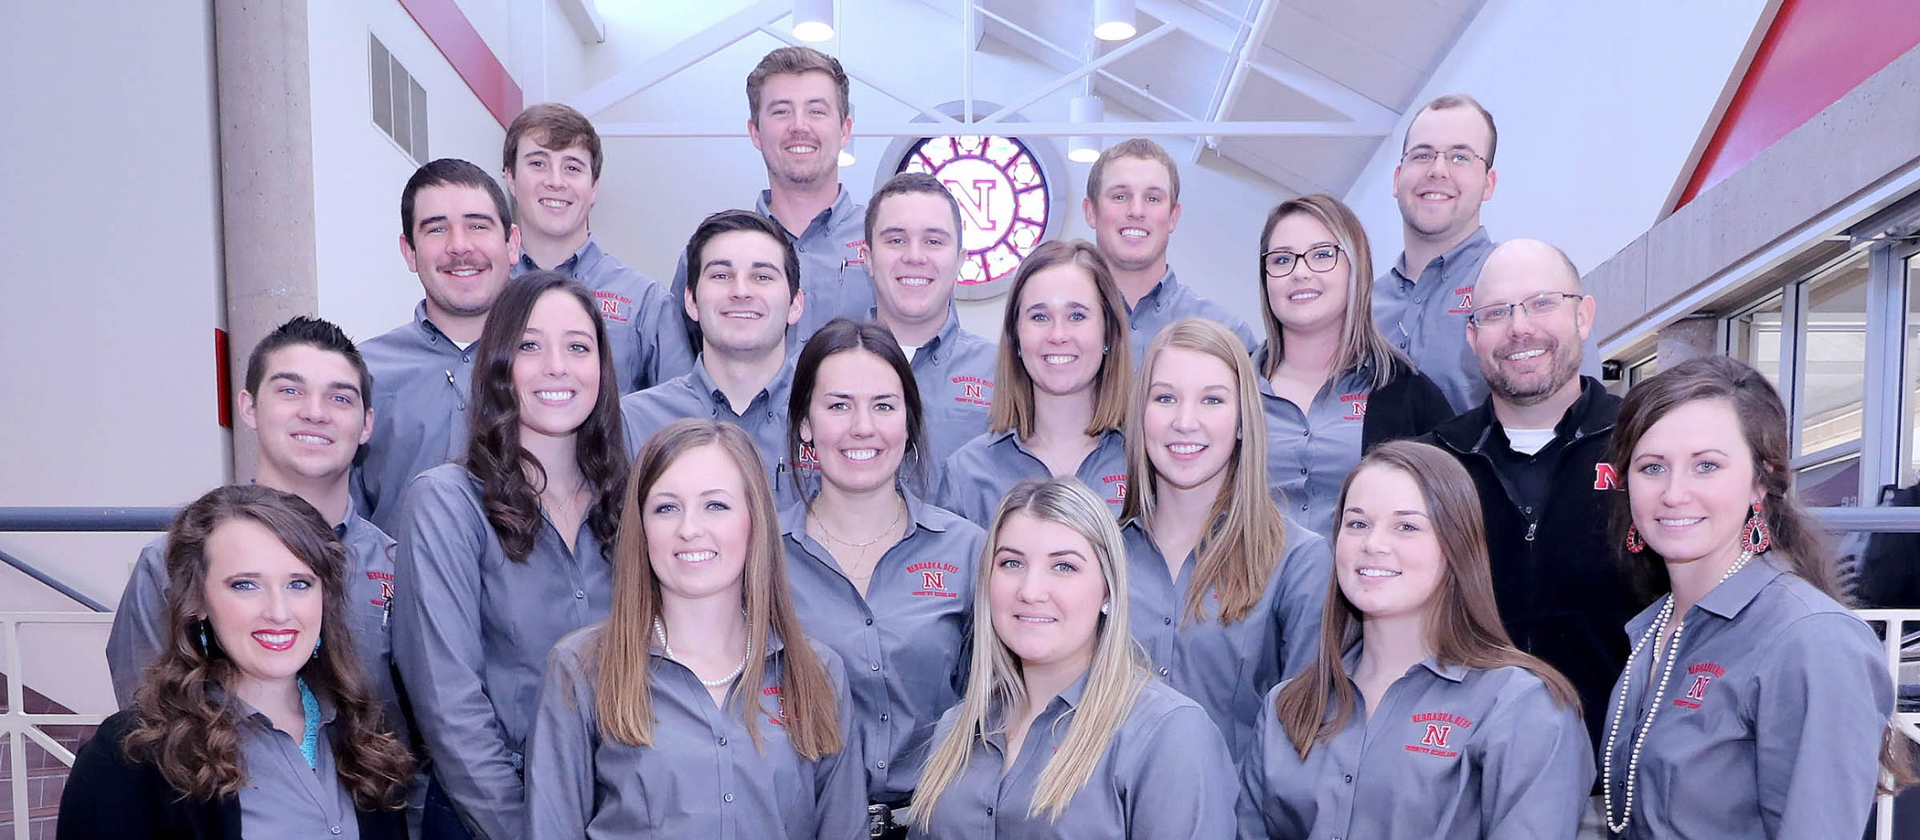 2018 Nebraska Beef Scholars pose for a picture.